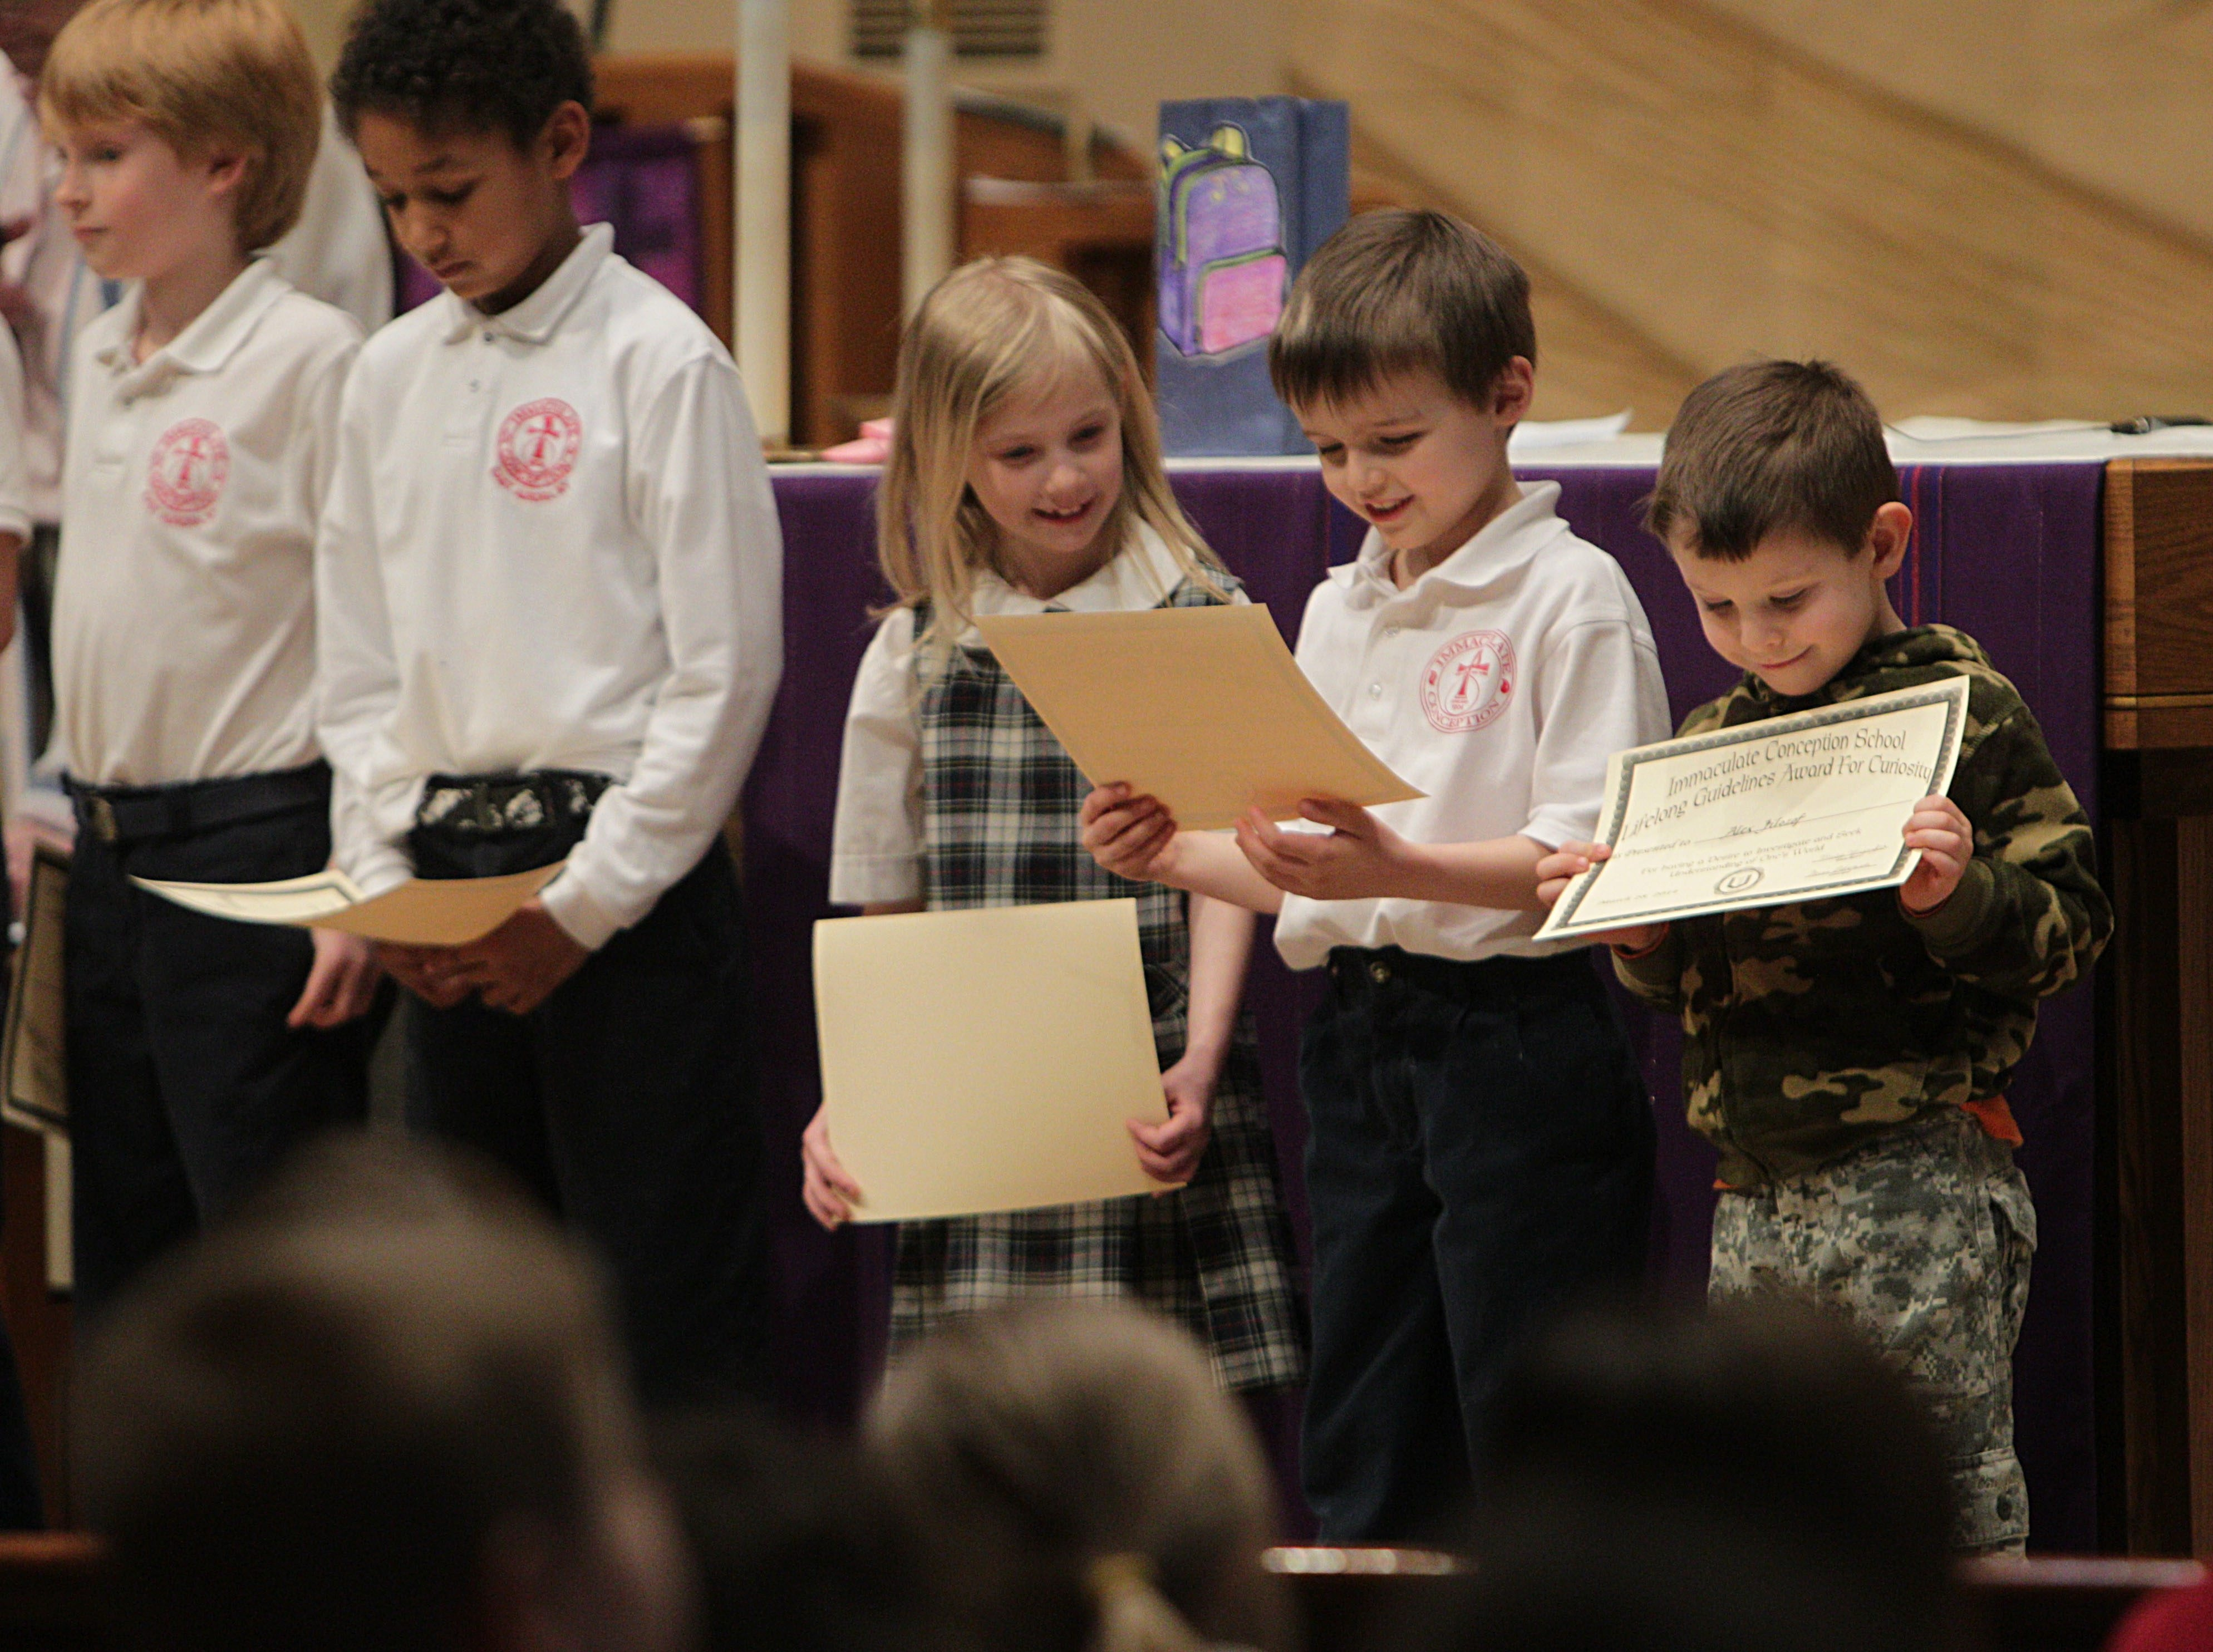 Immaculate Conception students Louisa Martin, third from left, Elias Pelletreau and Alex Filozof look at awards.